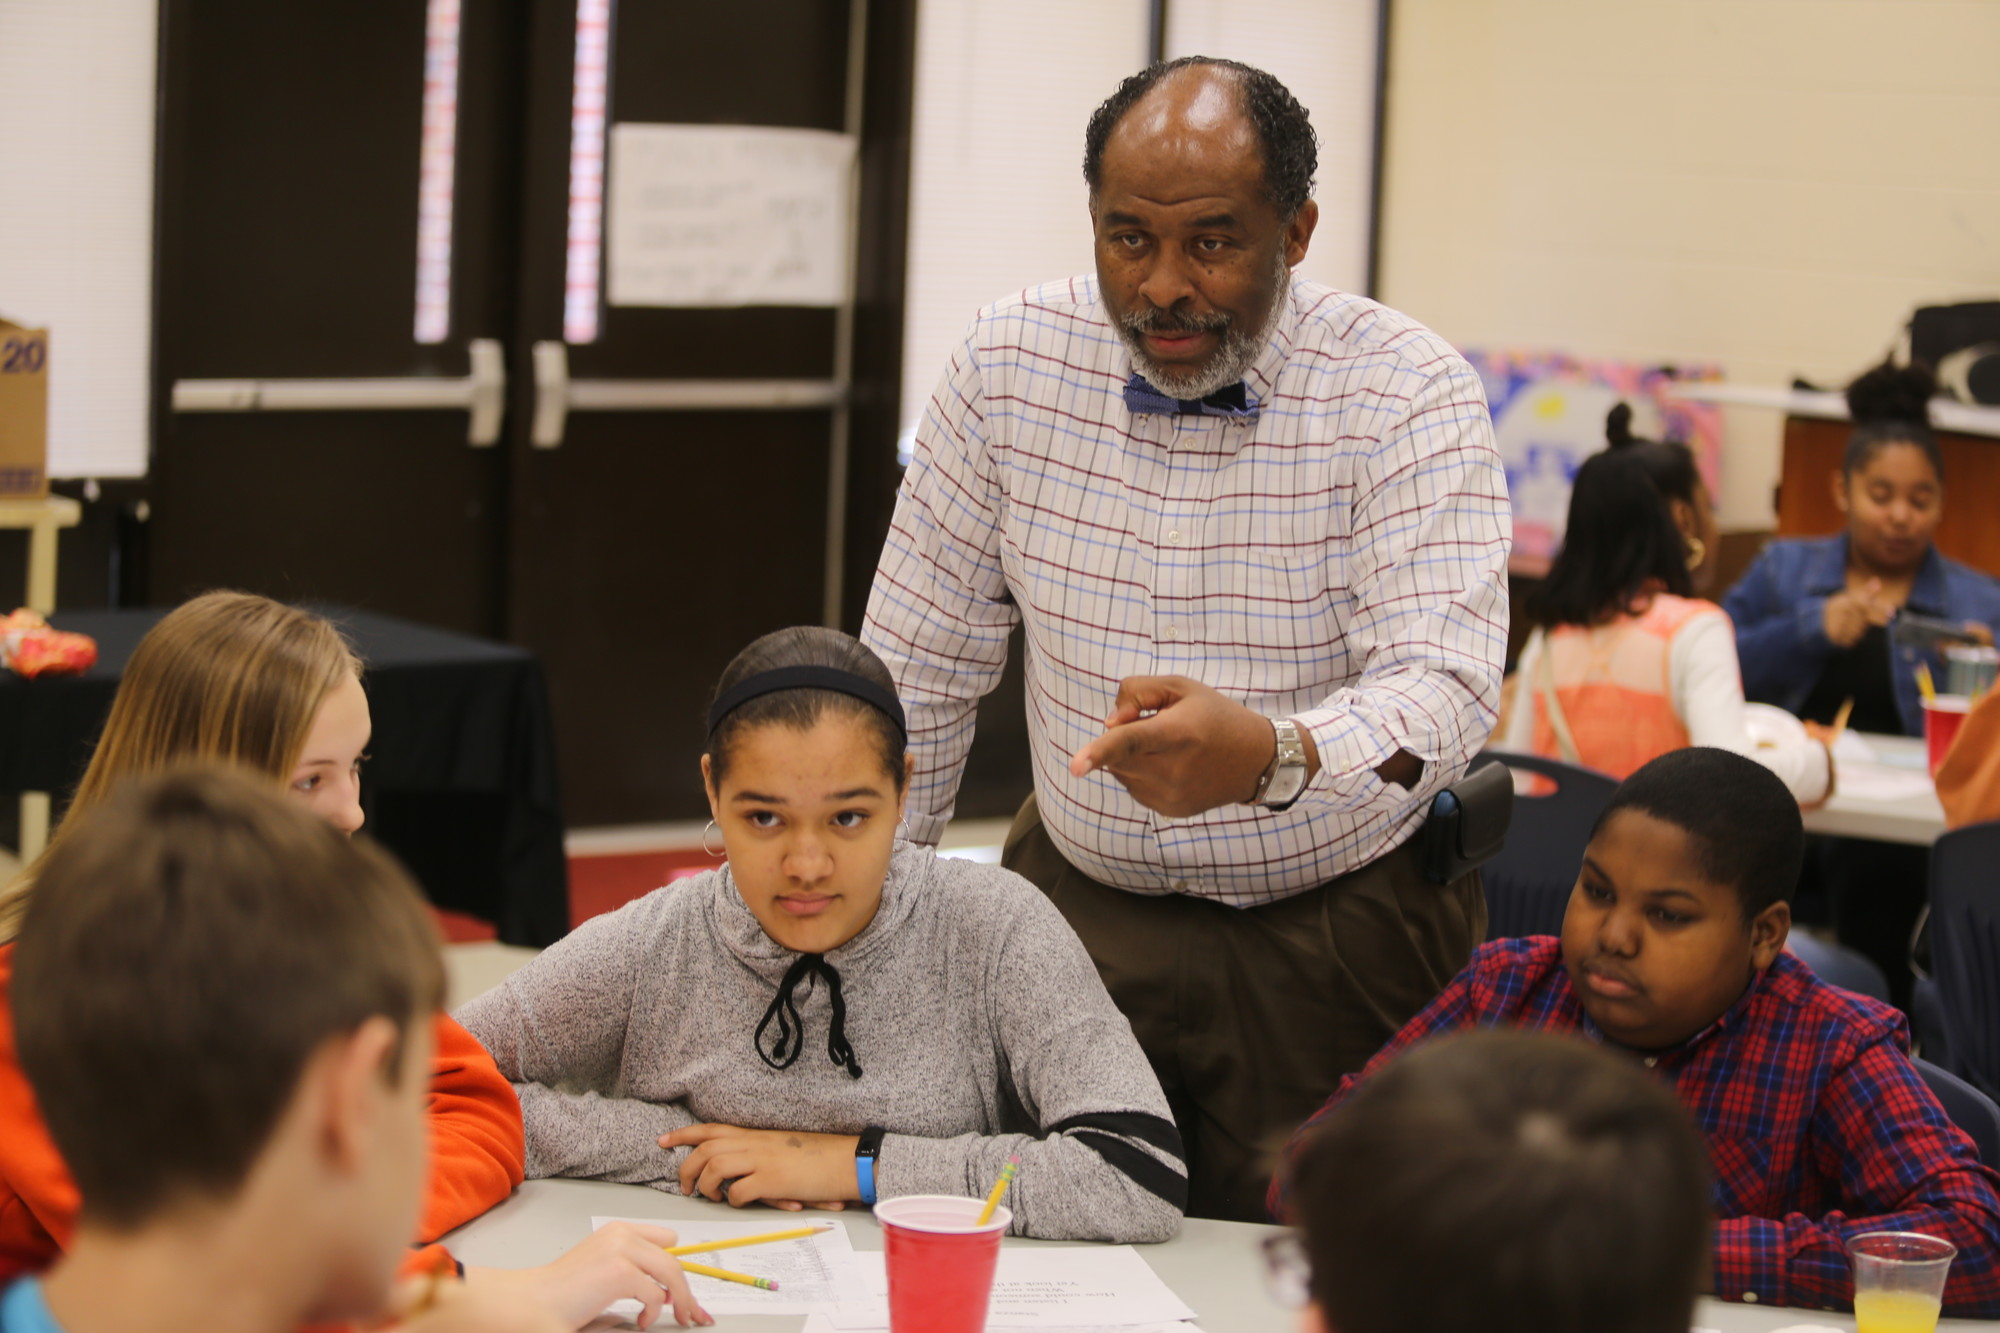 Adult volunteer Chuck Wilson leads a discussion at his table with Bates Middle School students during an intergenerational program session at the school on Wednesday.